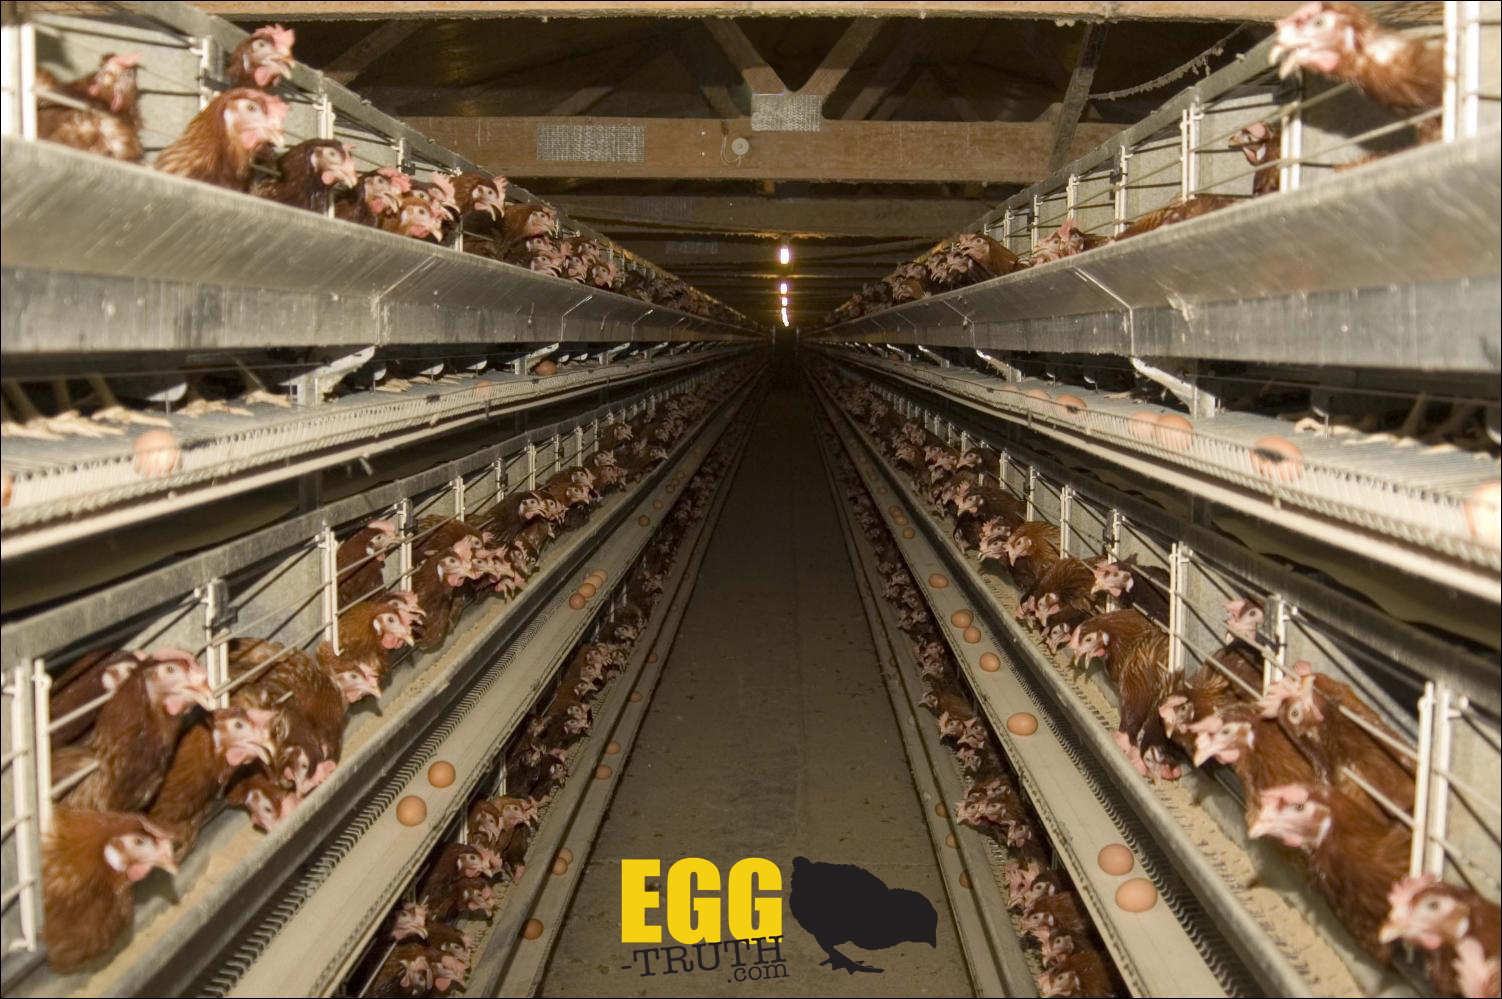 Battery_cages_egg_truth.jpg